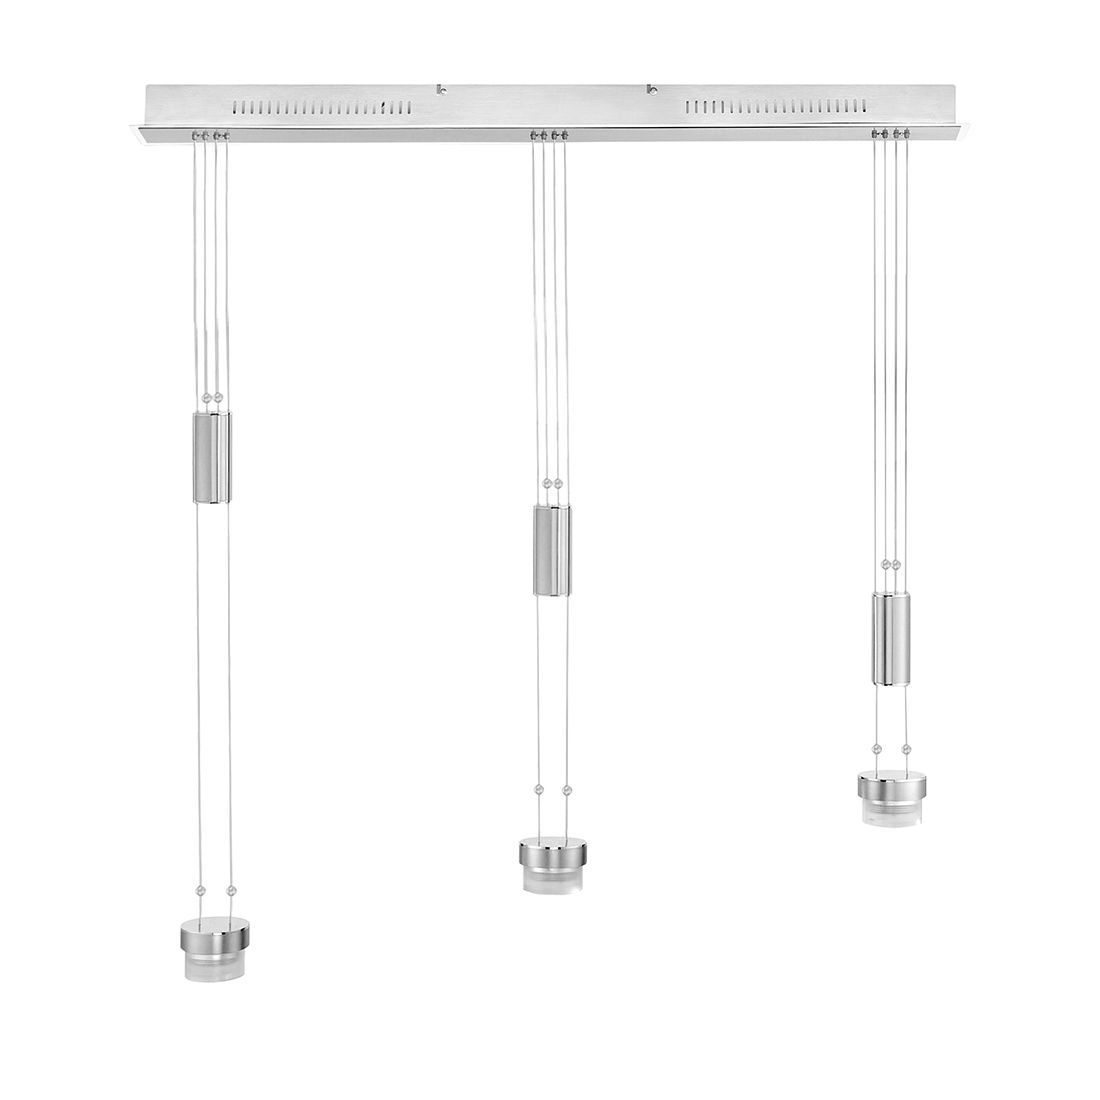 Suspension M6 Licht/Medium1-LED IV